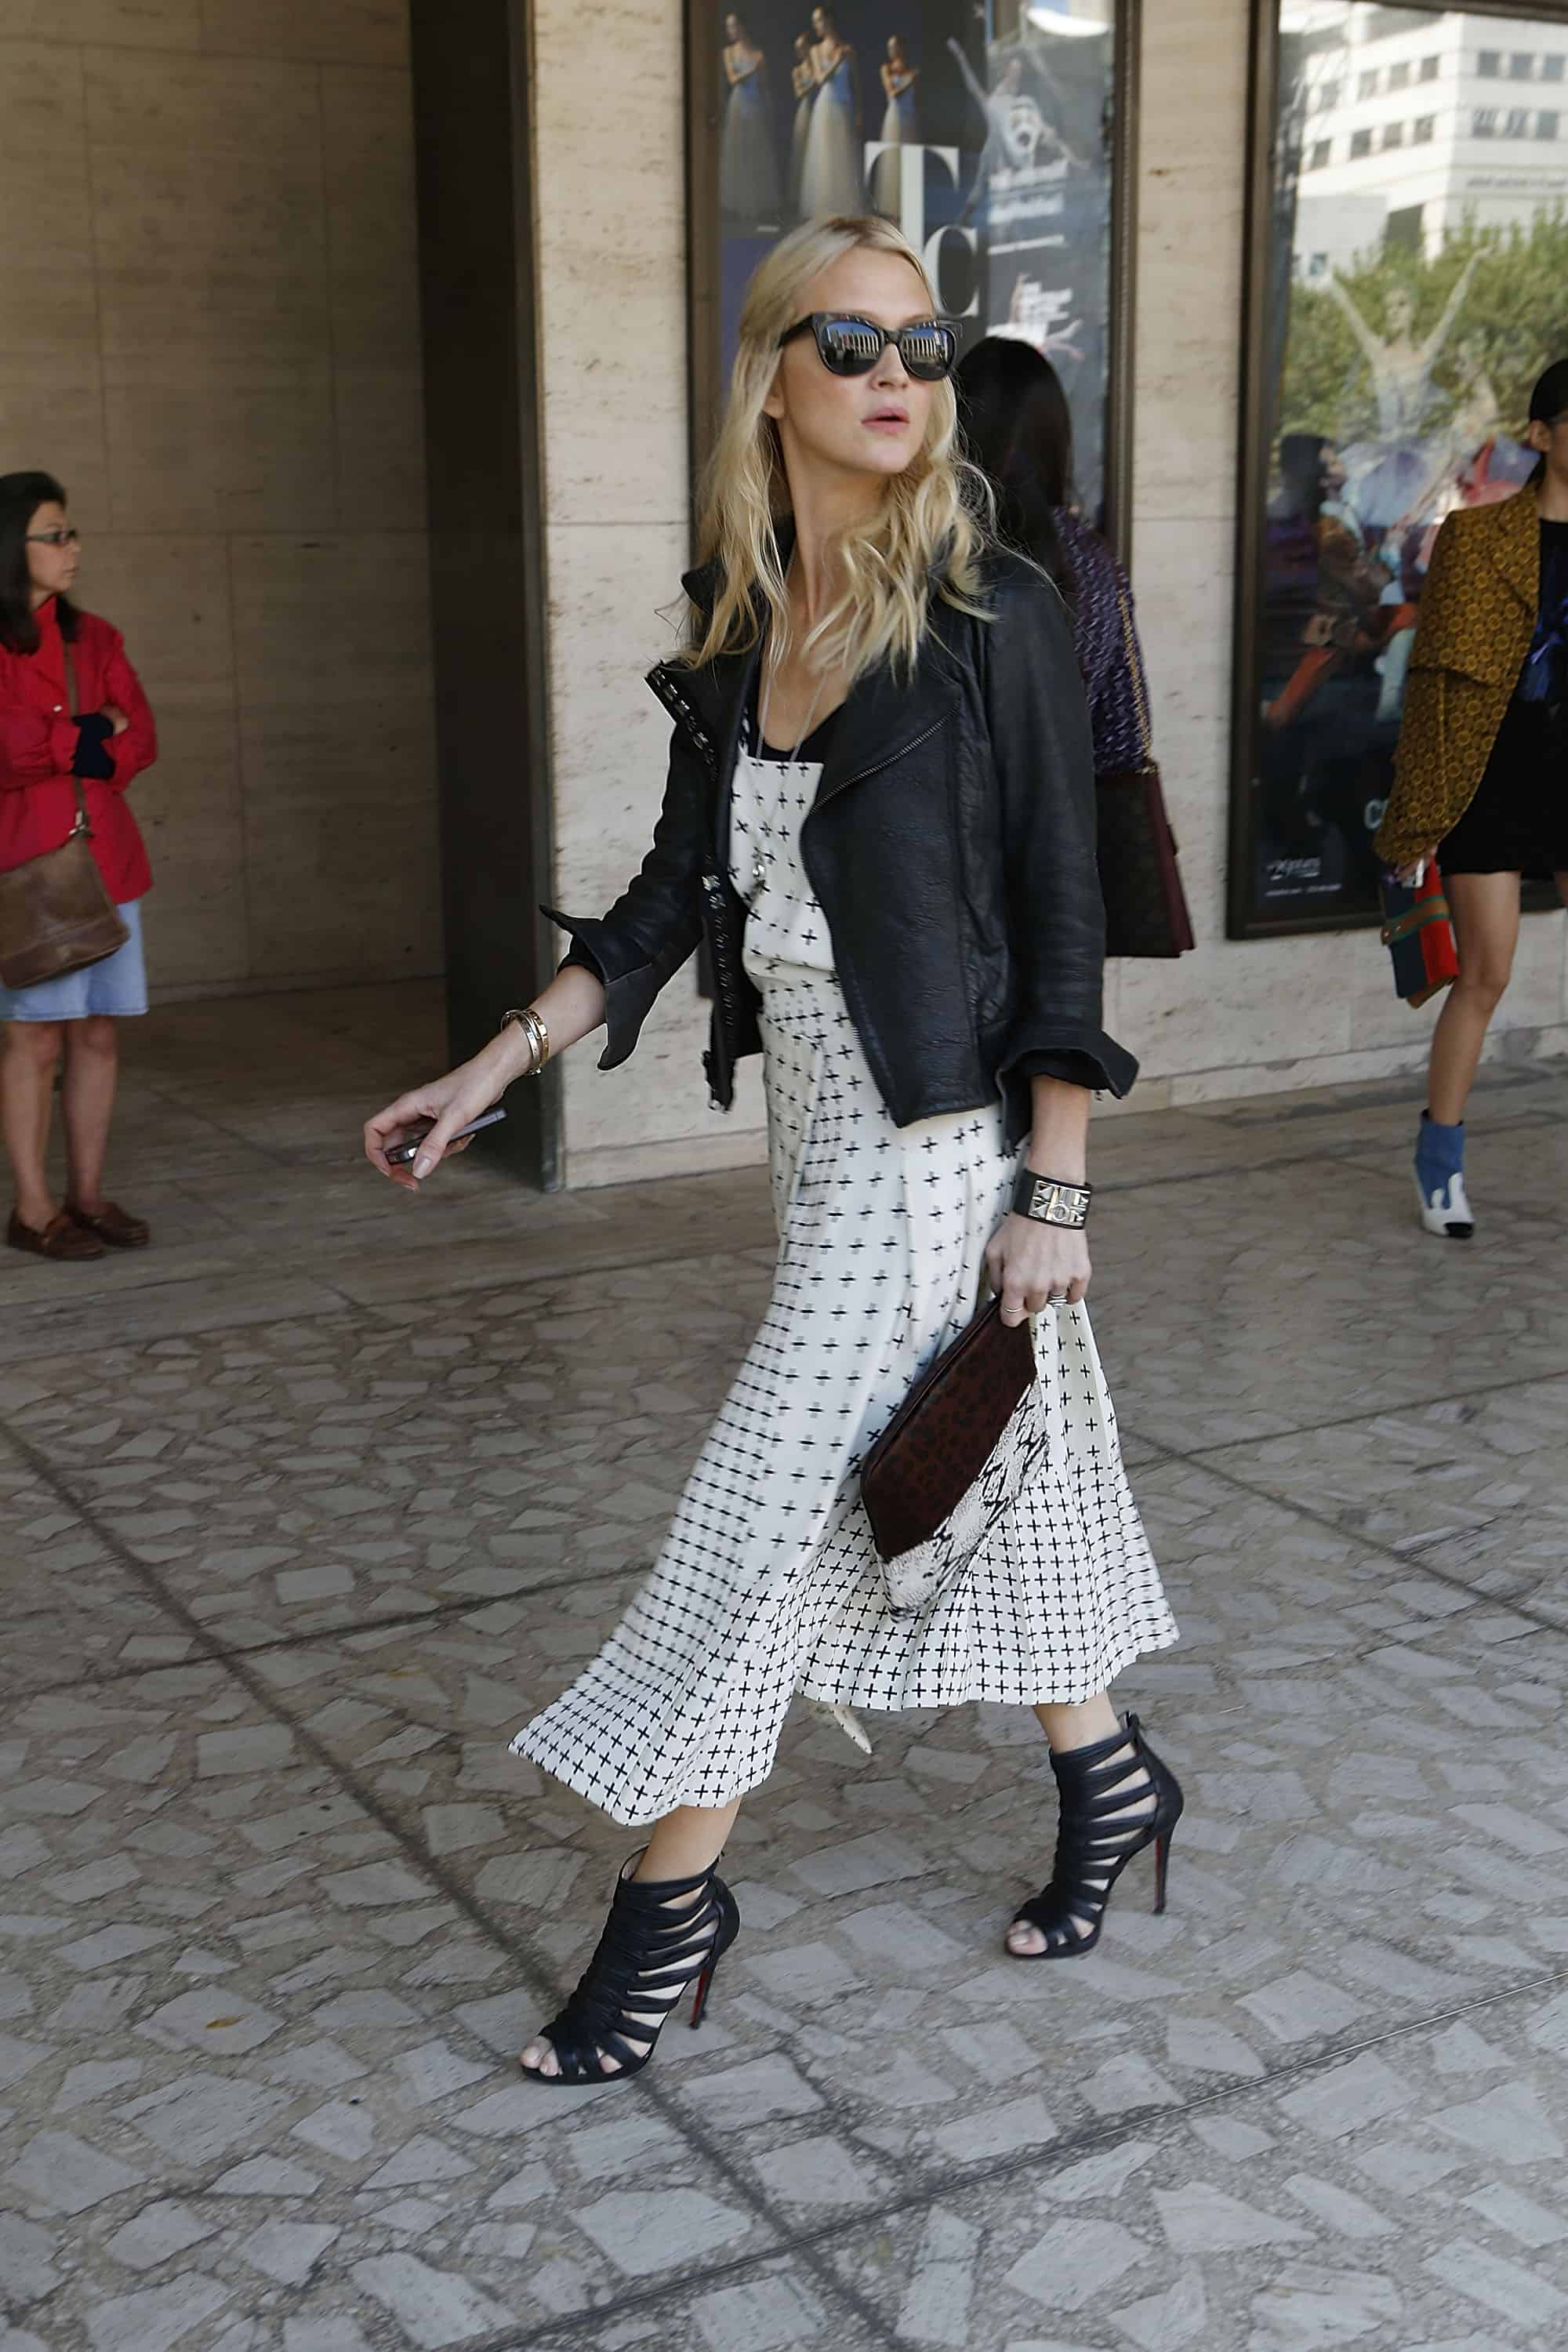 NEW YORK, NY - SEPTEMBER 12:  Guests arriving to the Michael Kors show  seen on the  Streets of Manhattan on September 12, 2012 in New York City.  (Photo by John Lamparski/Getty Images)